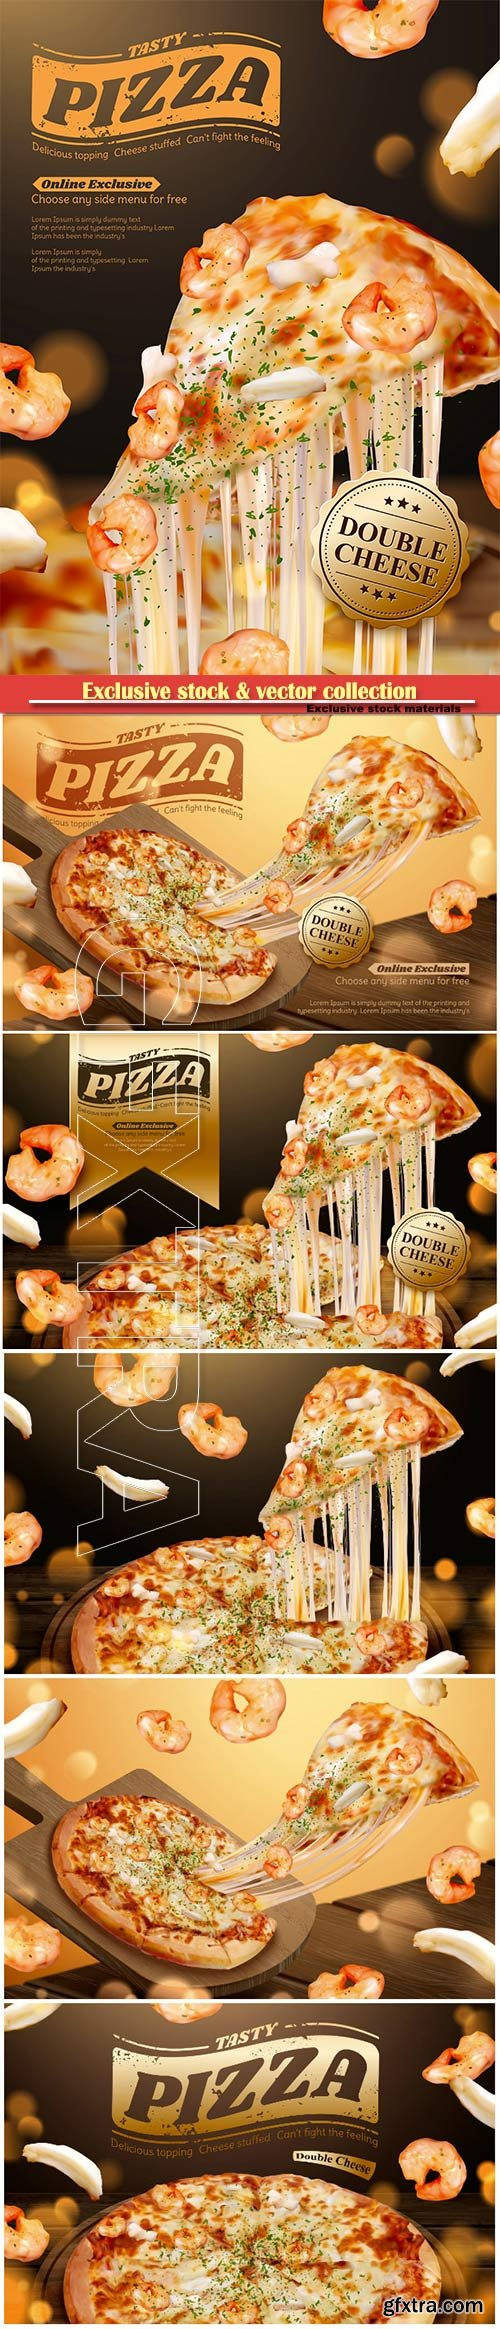 Tasty seafood pizza ads with stringy cheese in 3d illustration, shrimp and squid ring ingredients